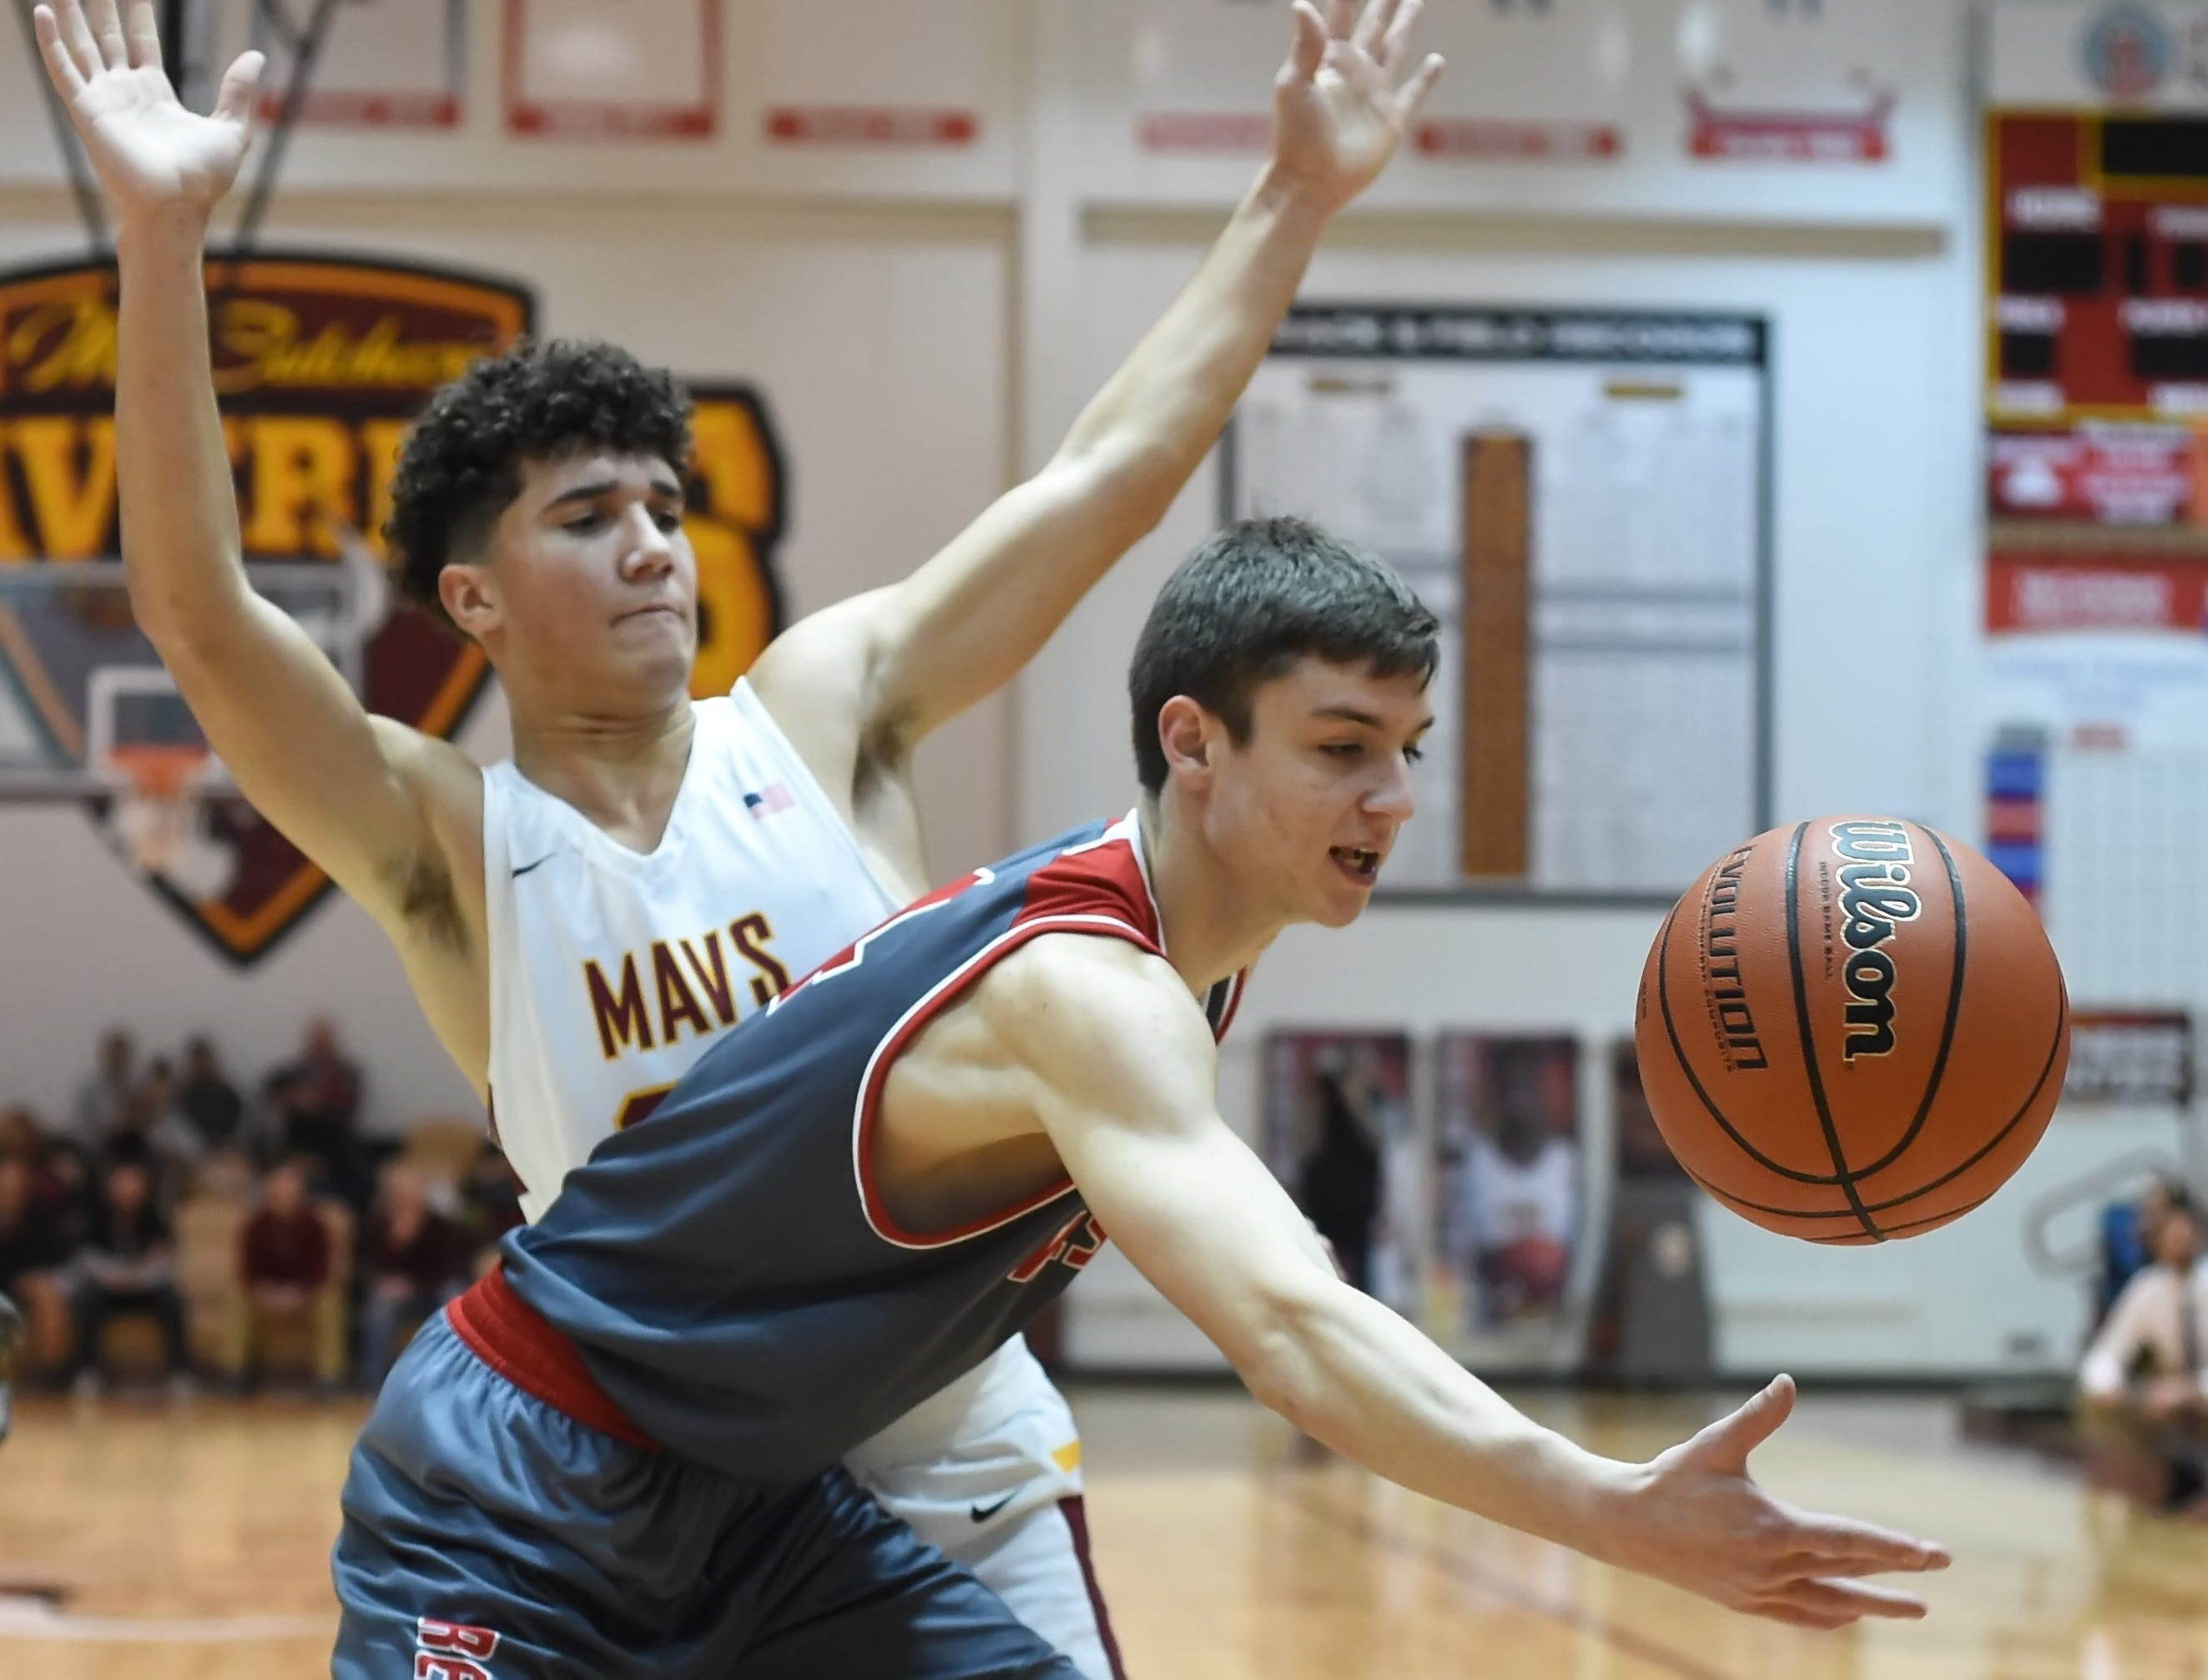 Scenes from Thursday night basketball action as the Mavericks of McCutcheon host the West Side Red Devils.